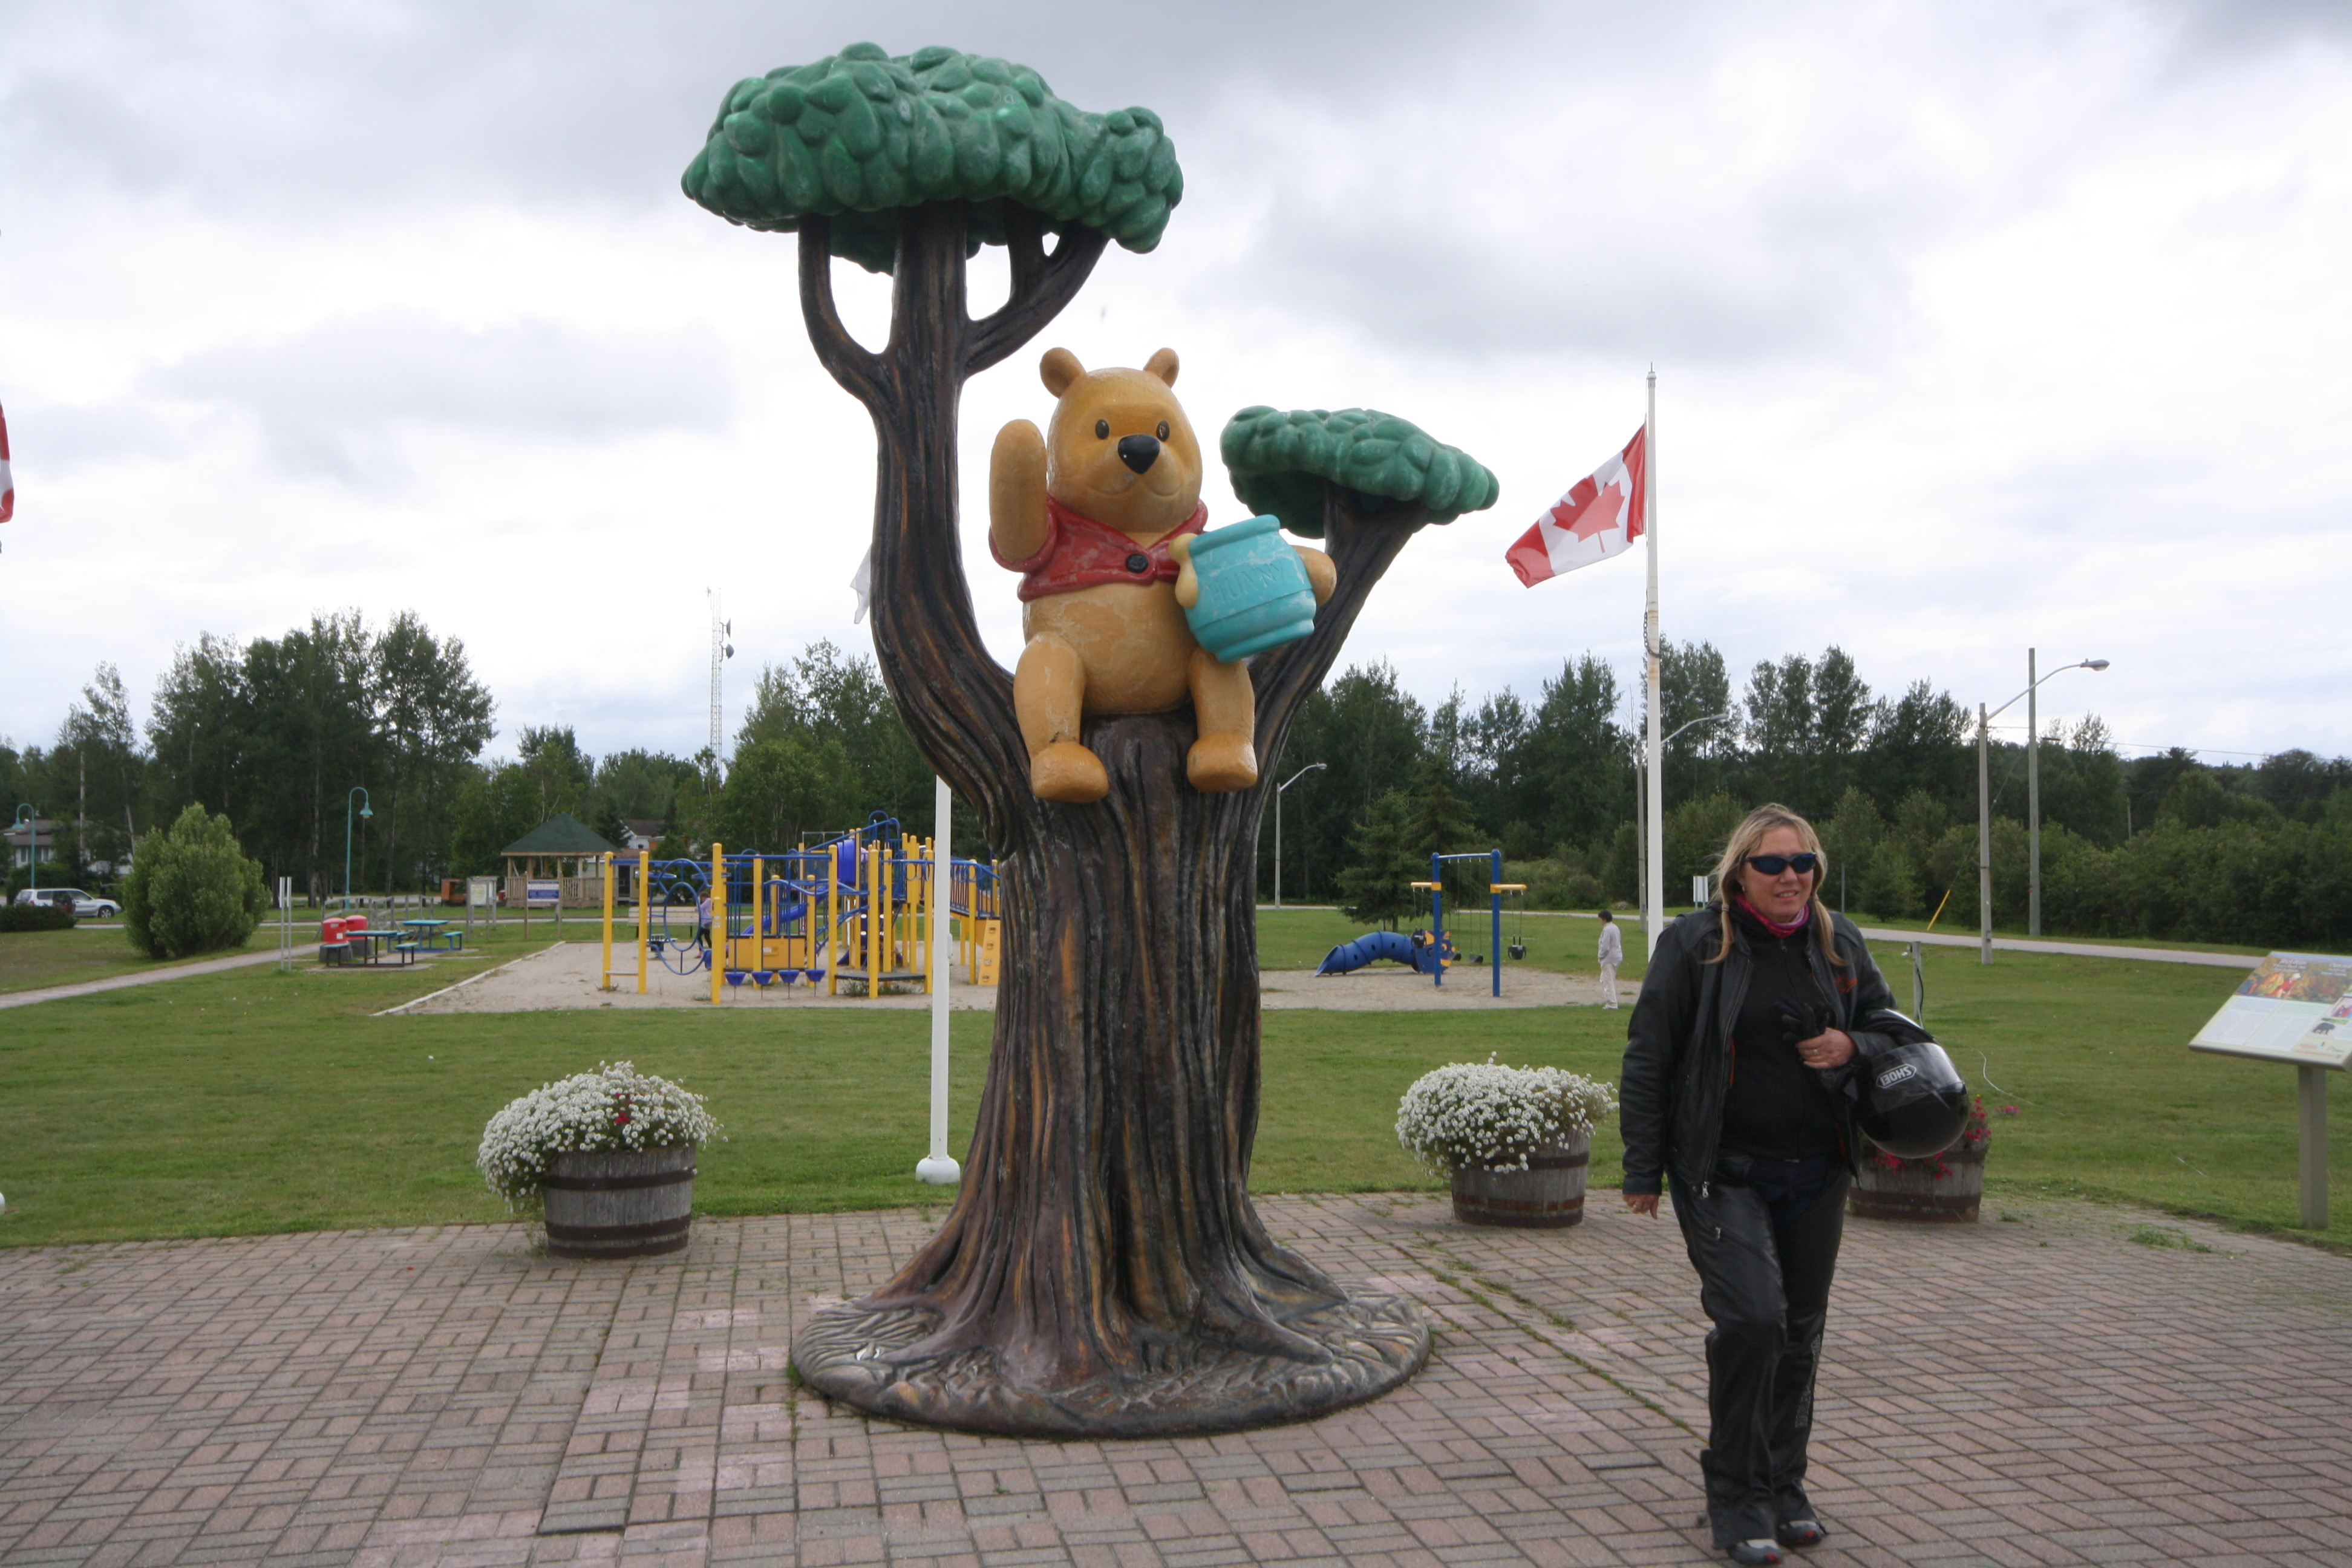 Kids will love the park and the Winnie-the-Pooh statue in White River. JIM BYERS PHOTO